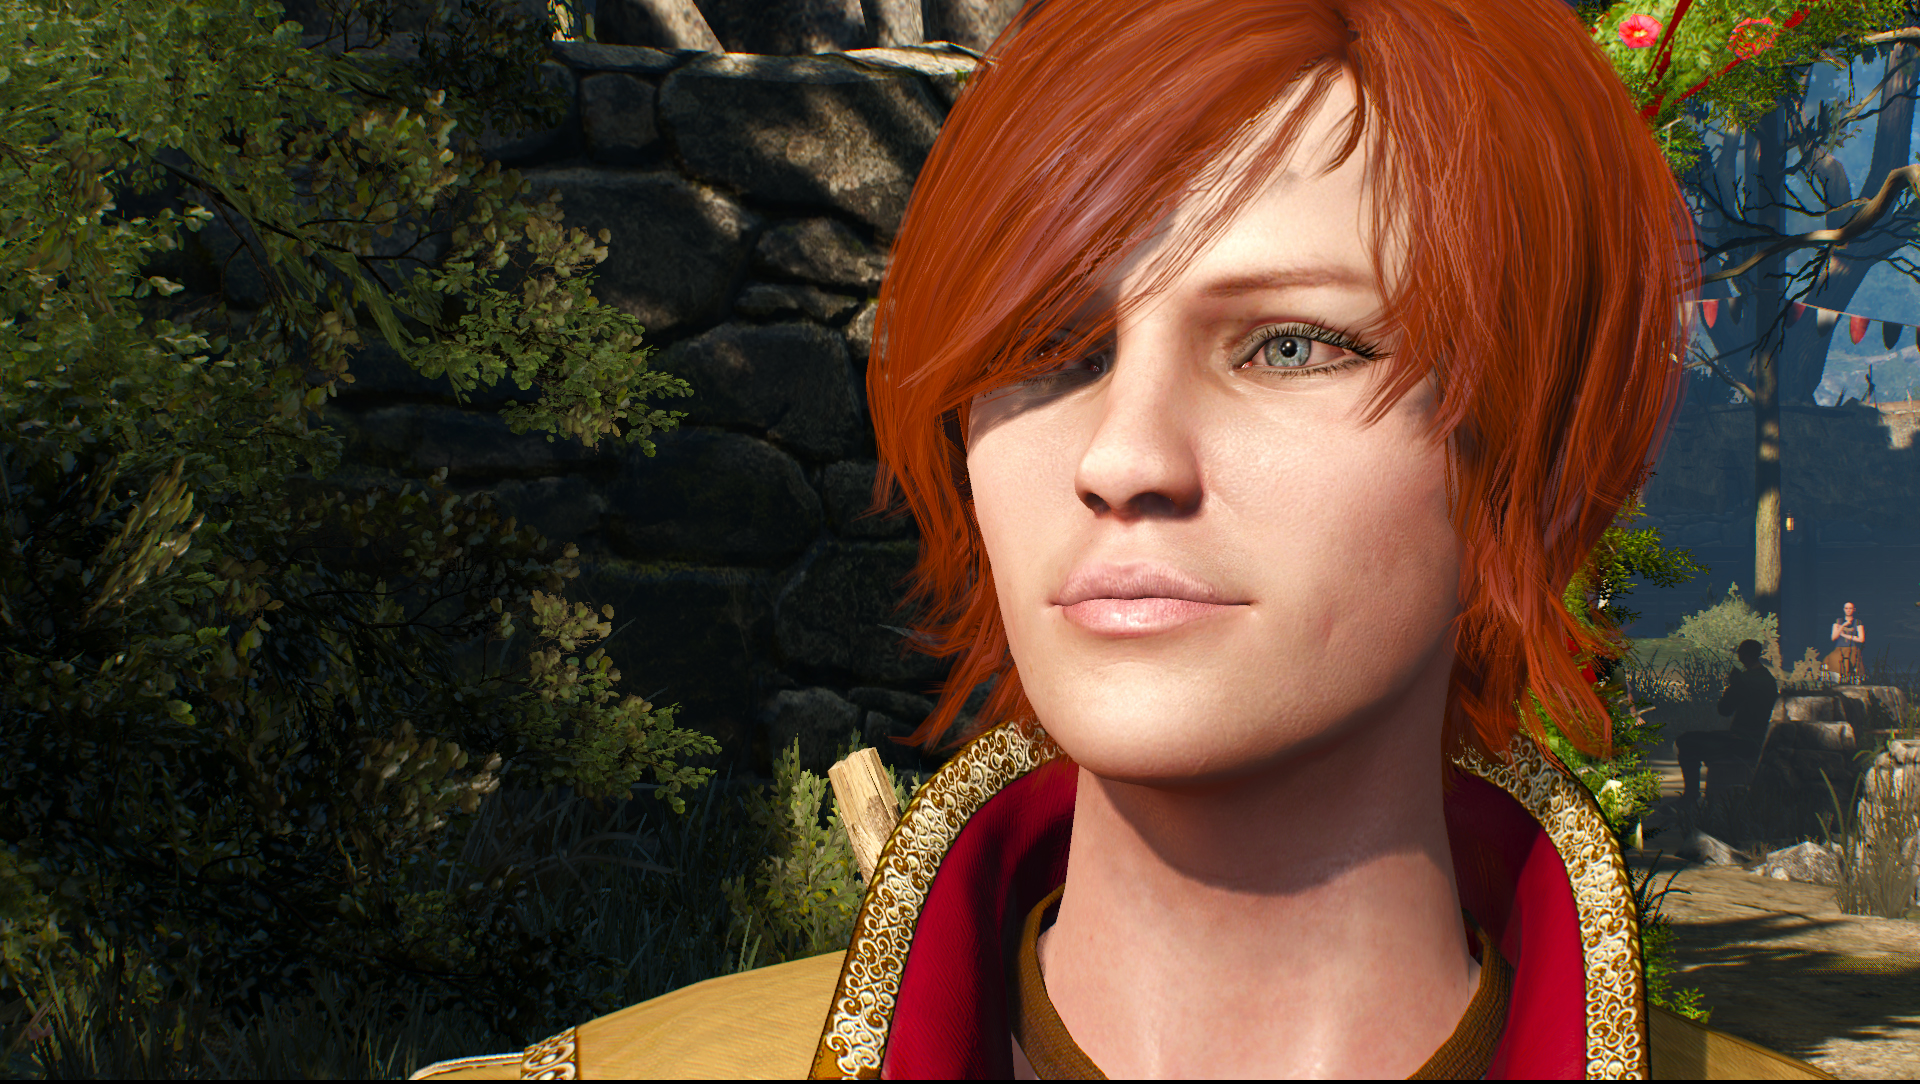 The Witcher 3 Latest Mod Improves Characters' Faces